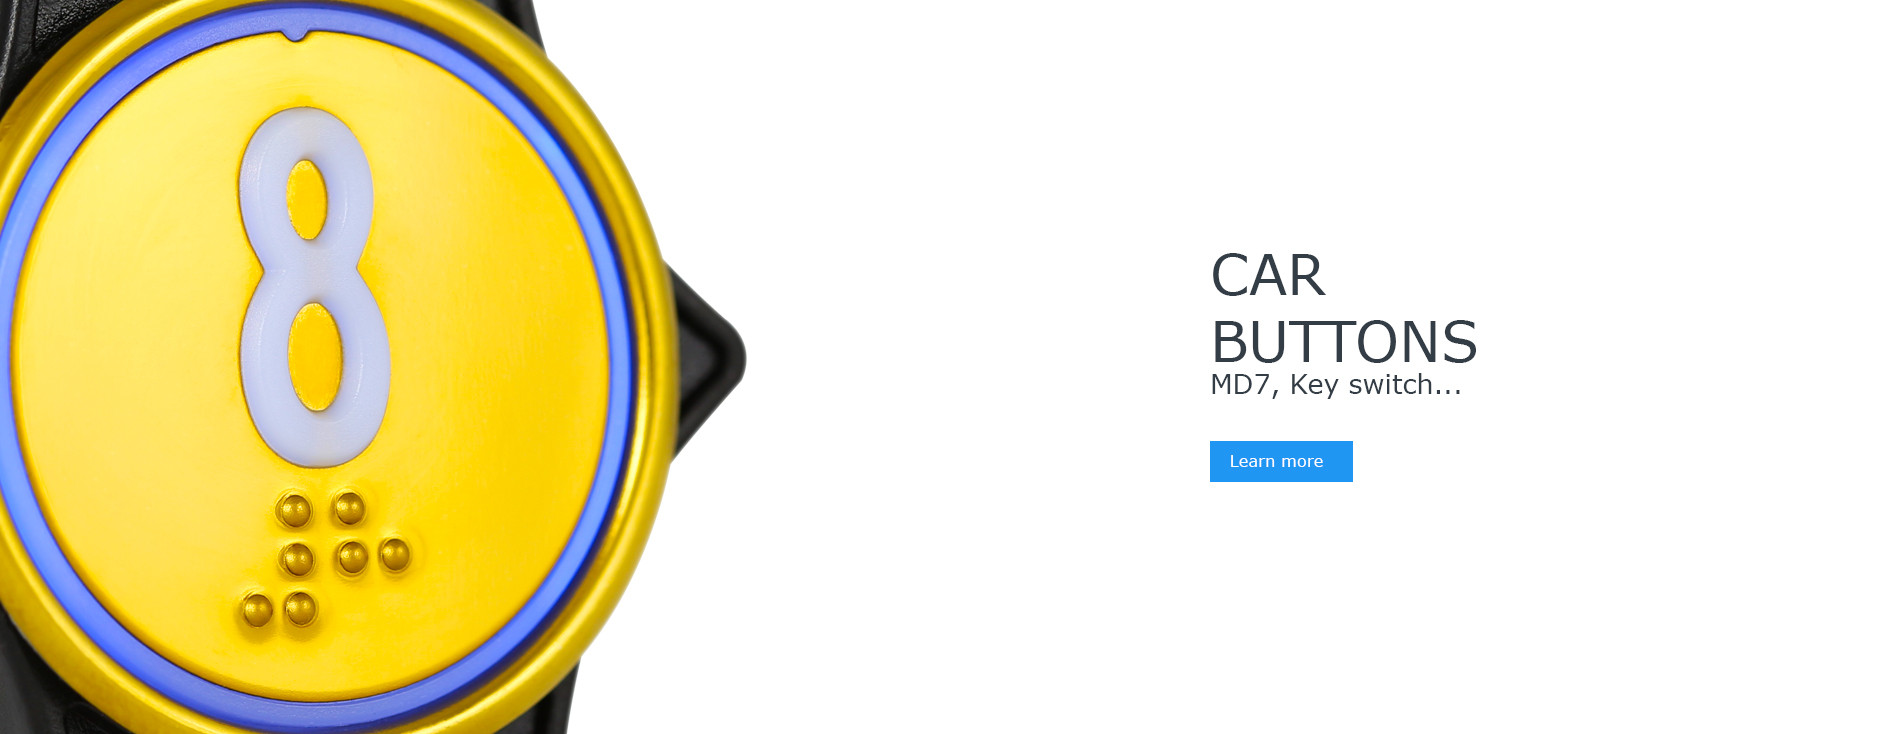 Car buttons After-Sales